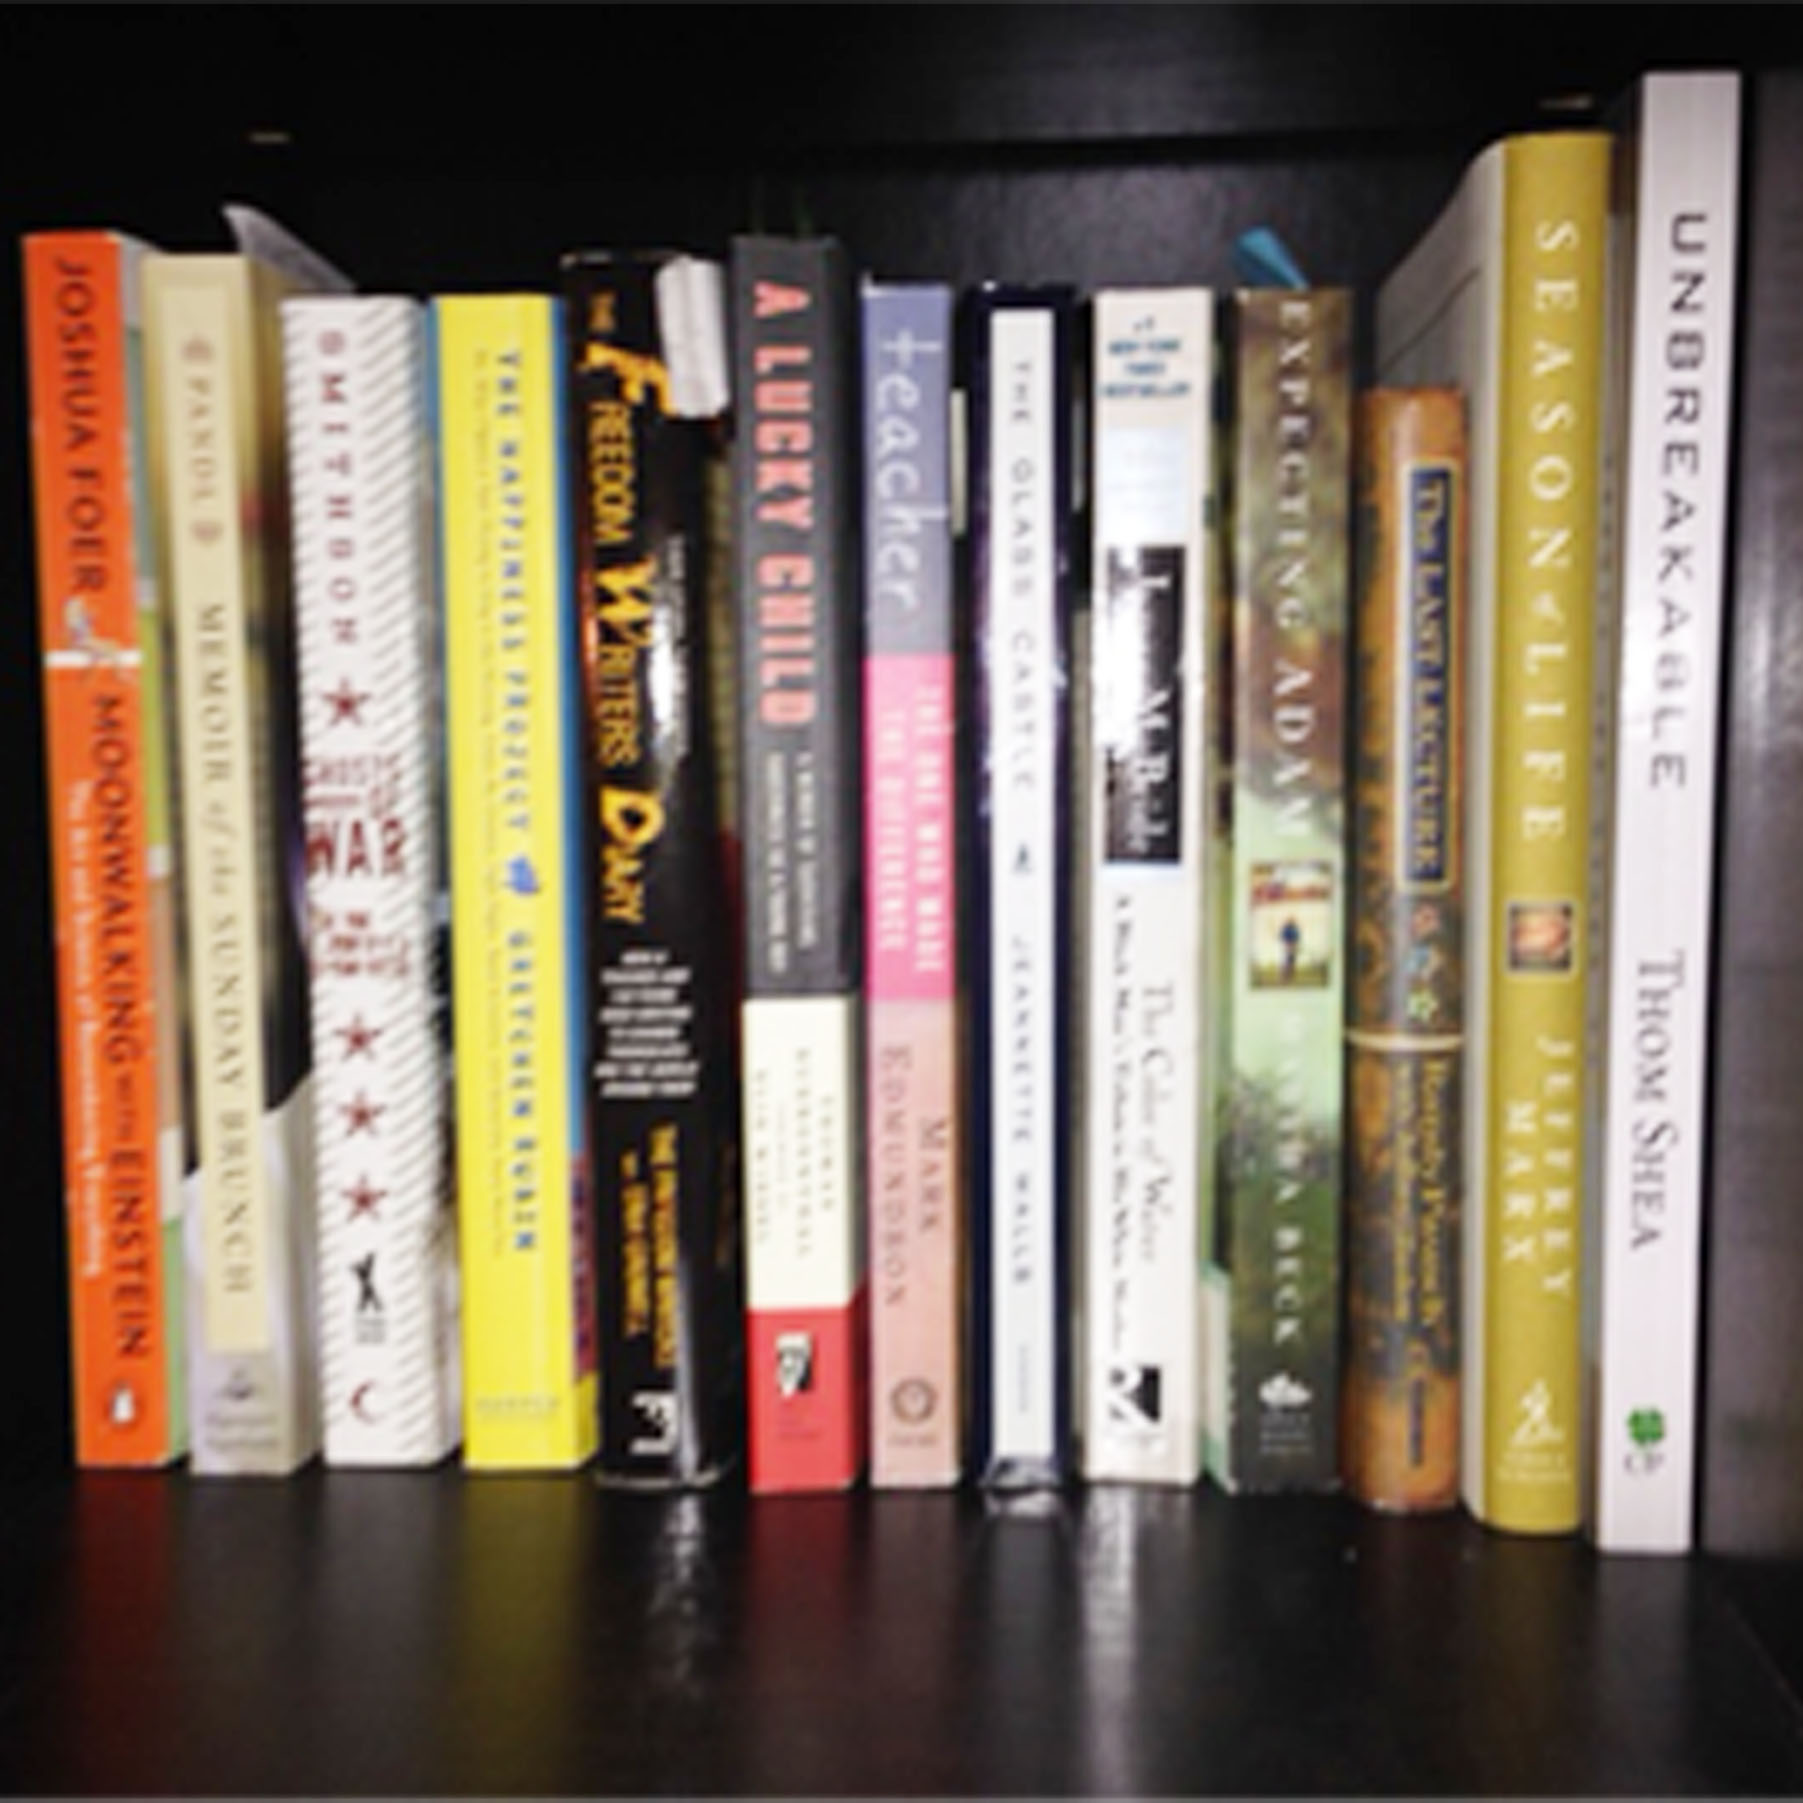 A photo of A set of books on a bookshelf representing Sunday Dinner Stories's LIfe Story Library.